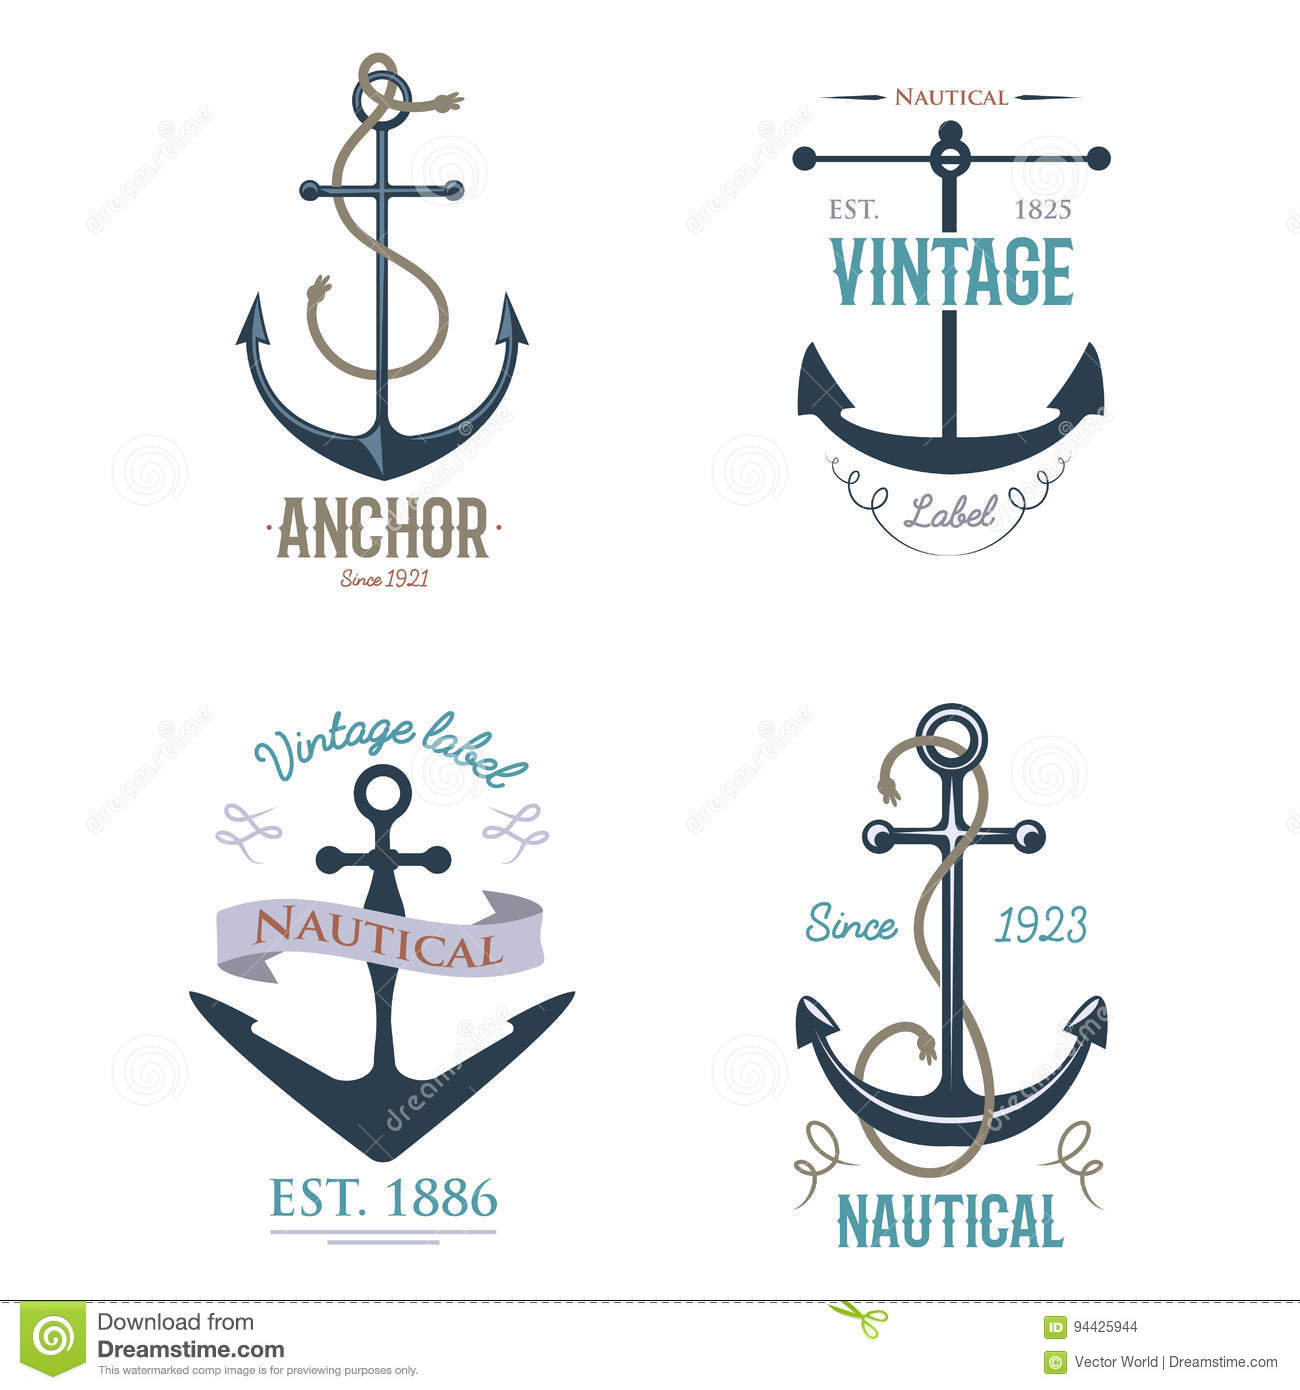 Vintage retro anchor badge vector sign sea ocean graphic element vintage retro anchor badge vector sign sea ocean graphic element nautical anchorage symbol illustration biocorpaavc Choice Image